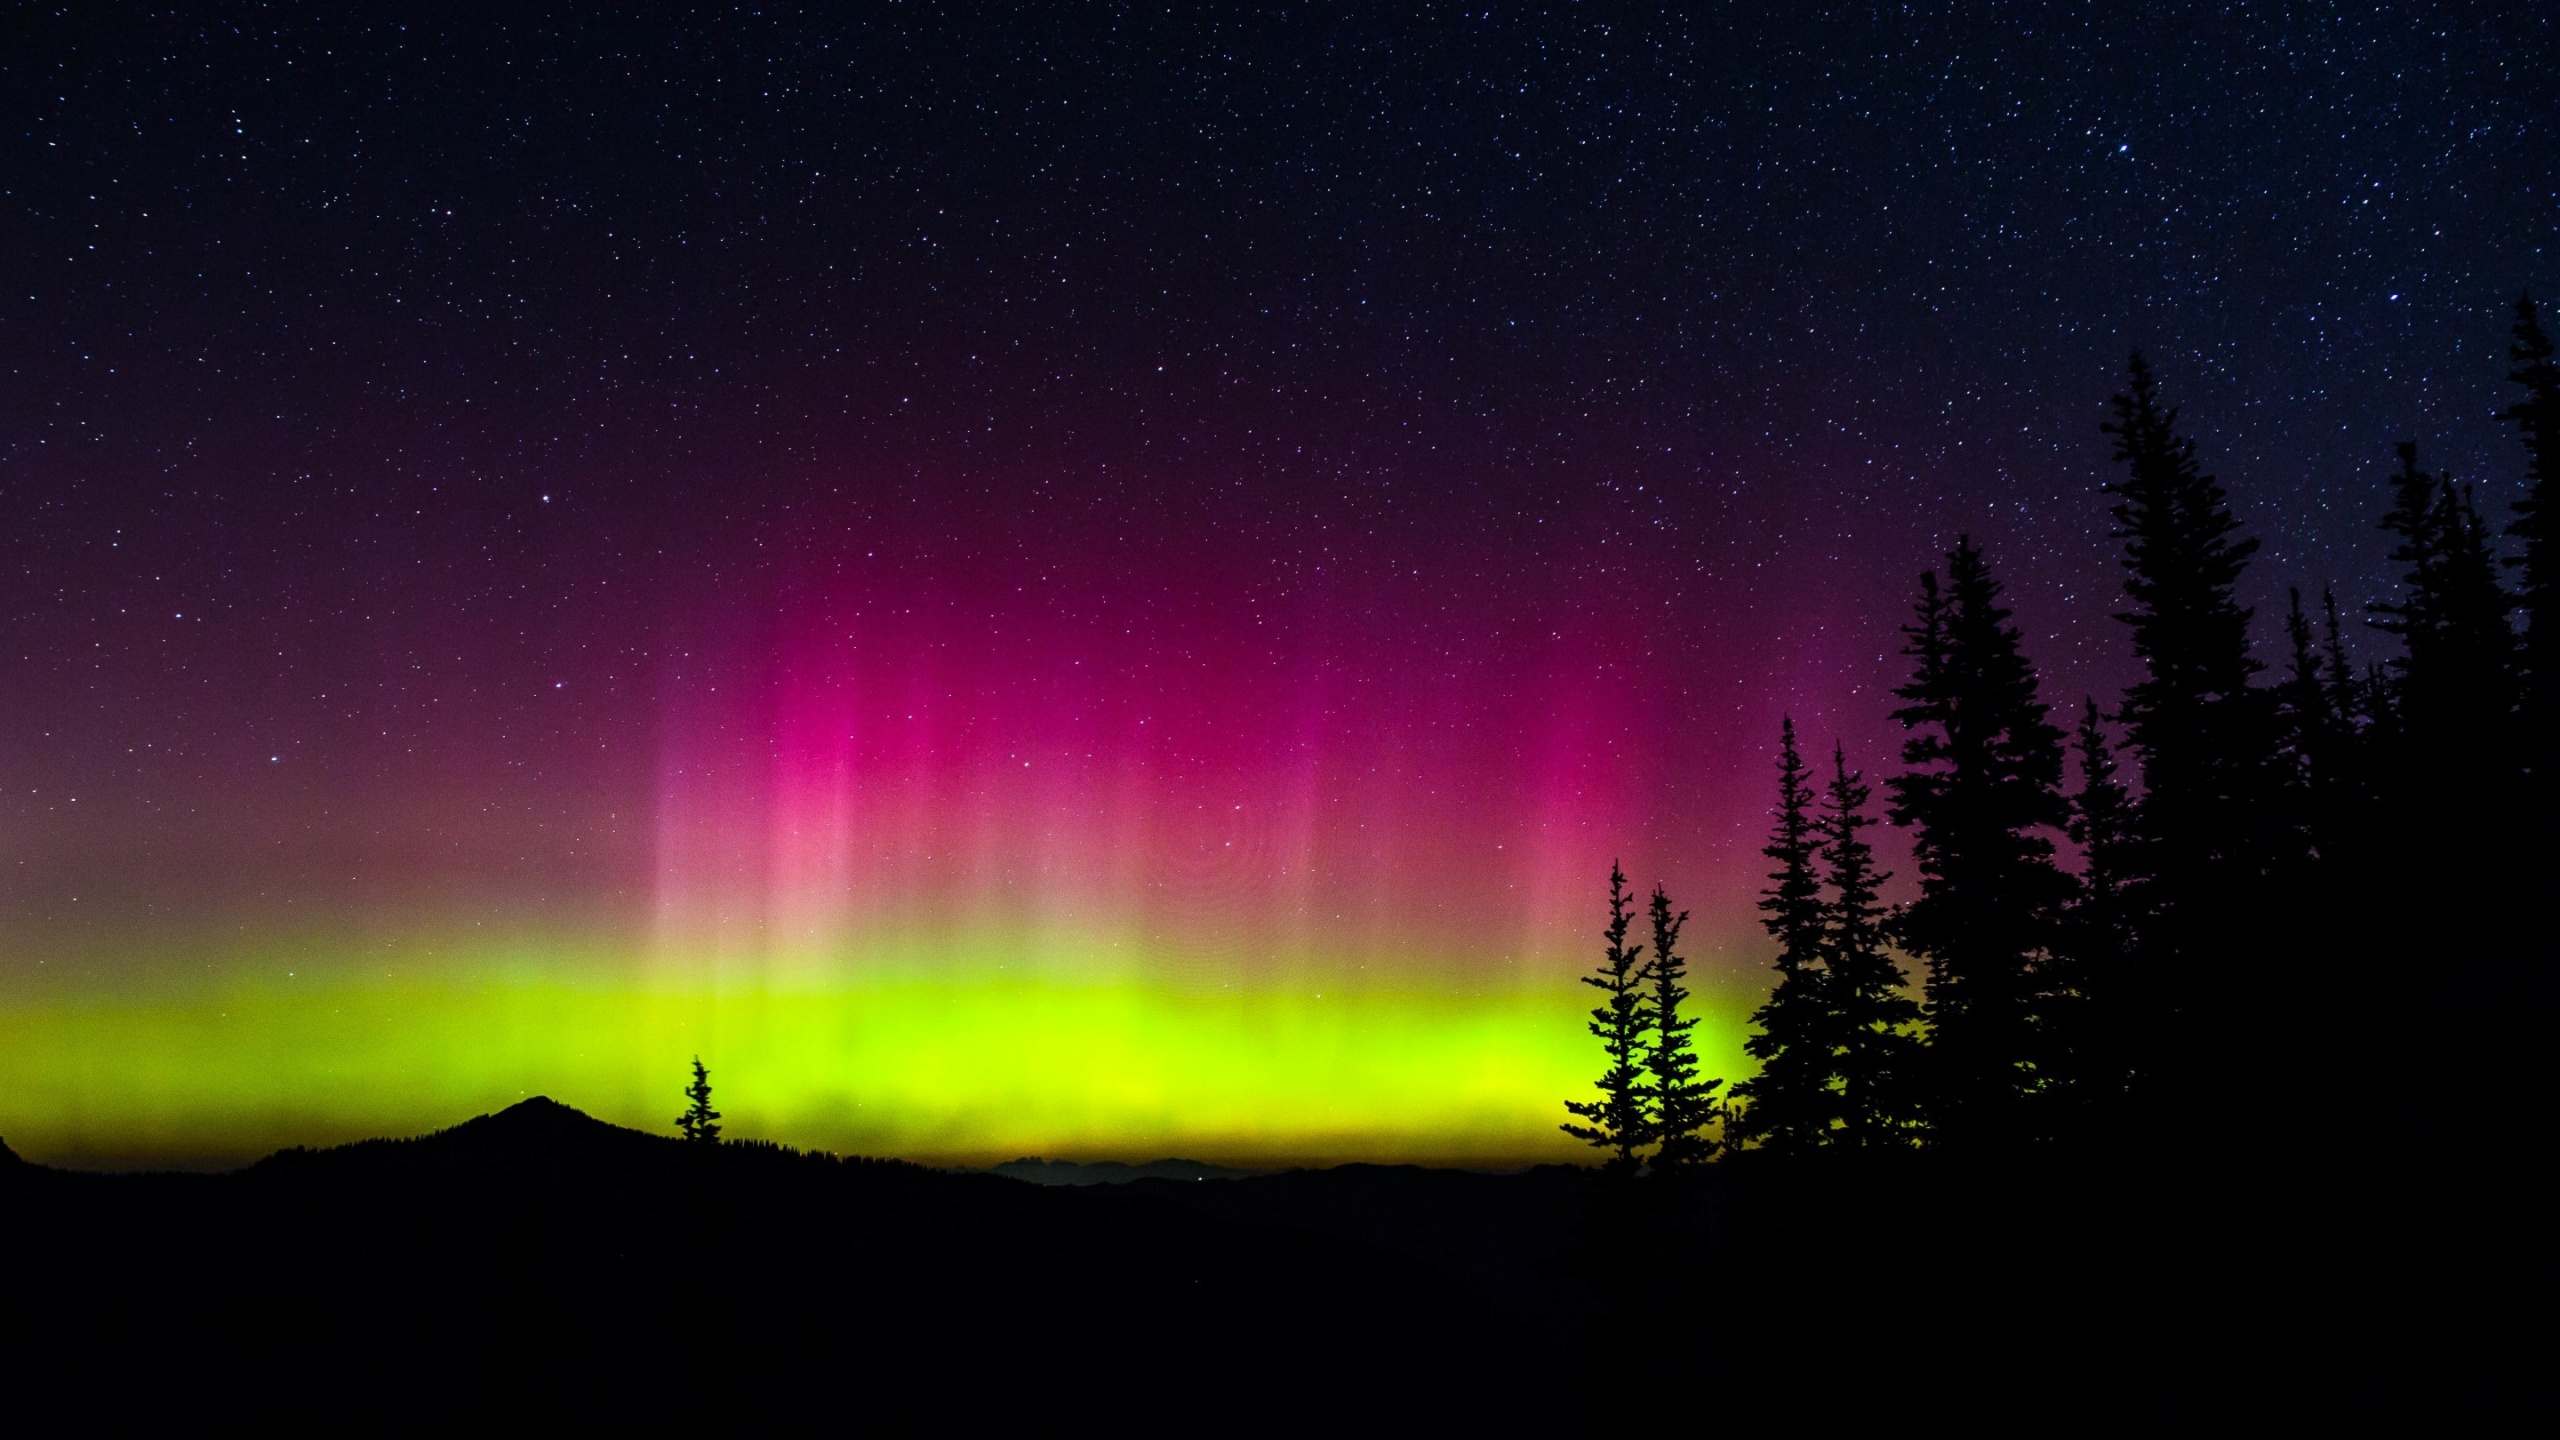 Os X Wallpapers Hd Space Northern Lights Stars Night Wallpapers 2560x1440